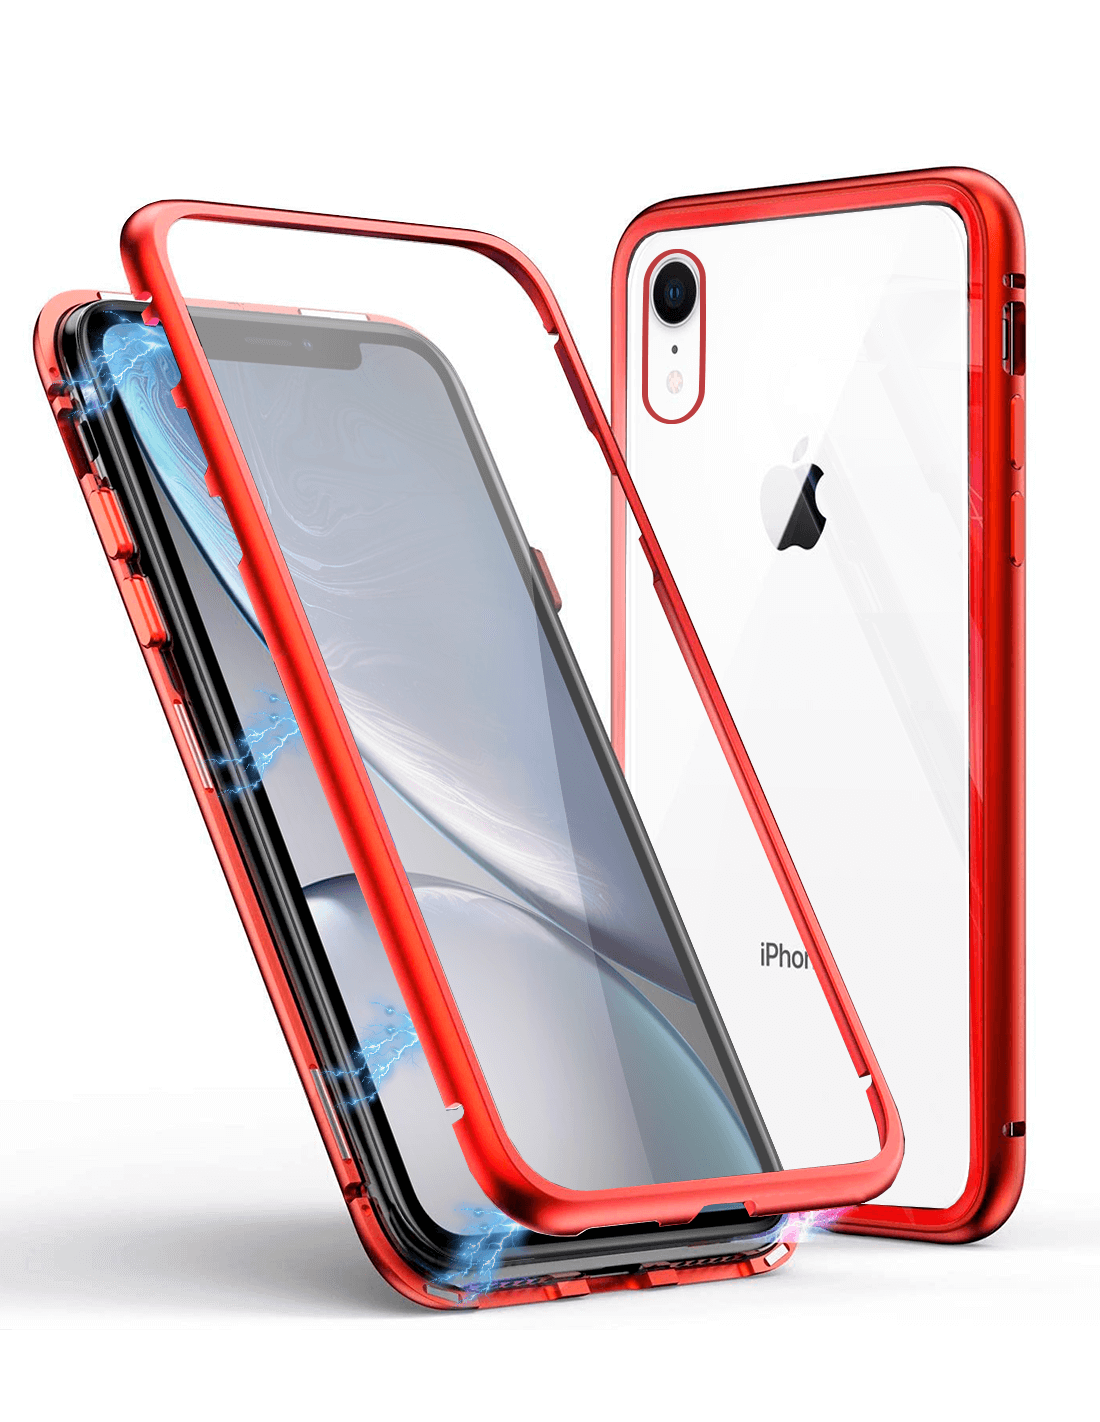 Apple iPhone XR Funda Magnética Roja Con Templado Antiespía